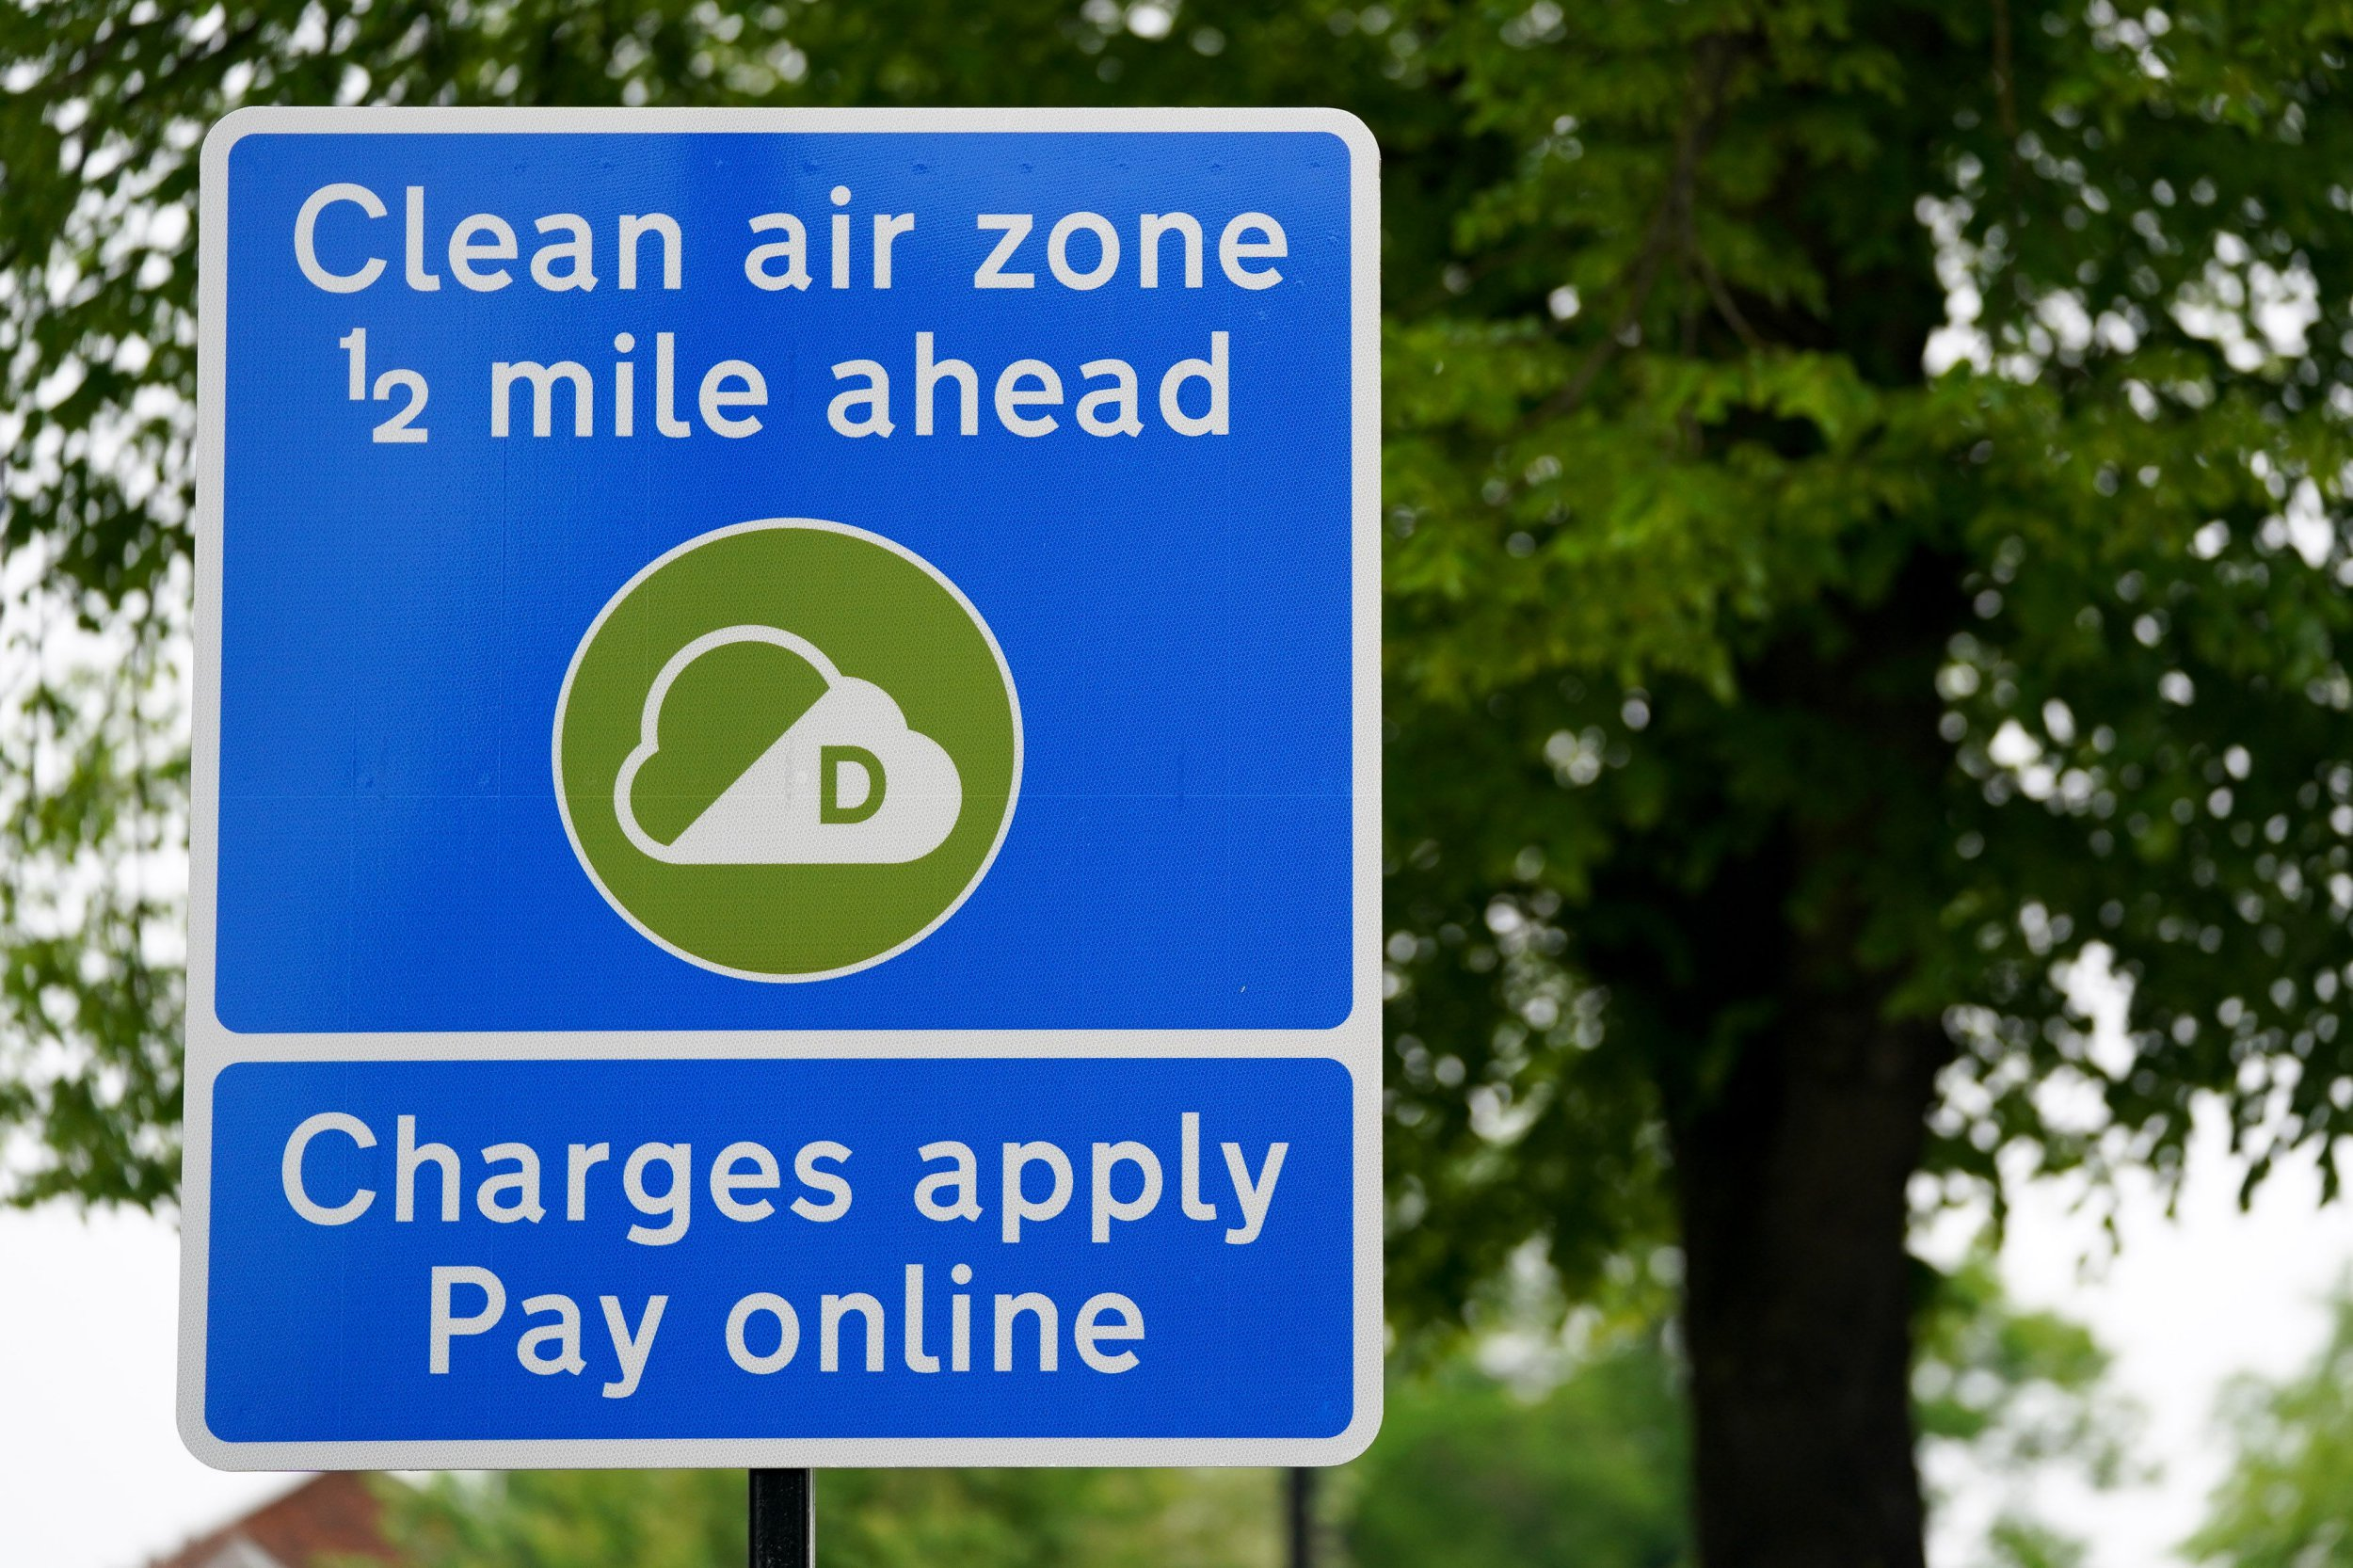 Credit: I News https://inews.co.uk/news/birmigham-clean-air-zone-map-charge-where-apply-rules-explained-vehicle-checker-1029516